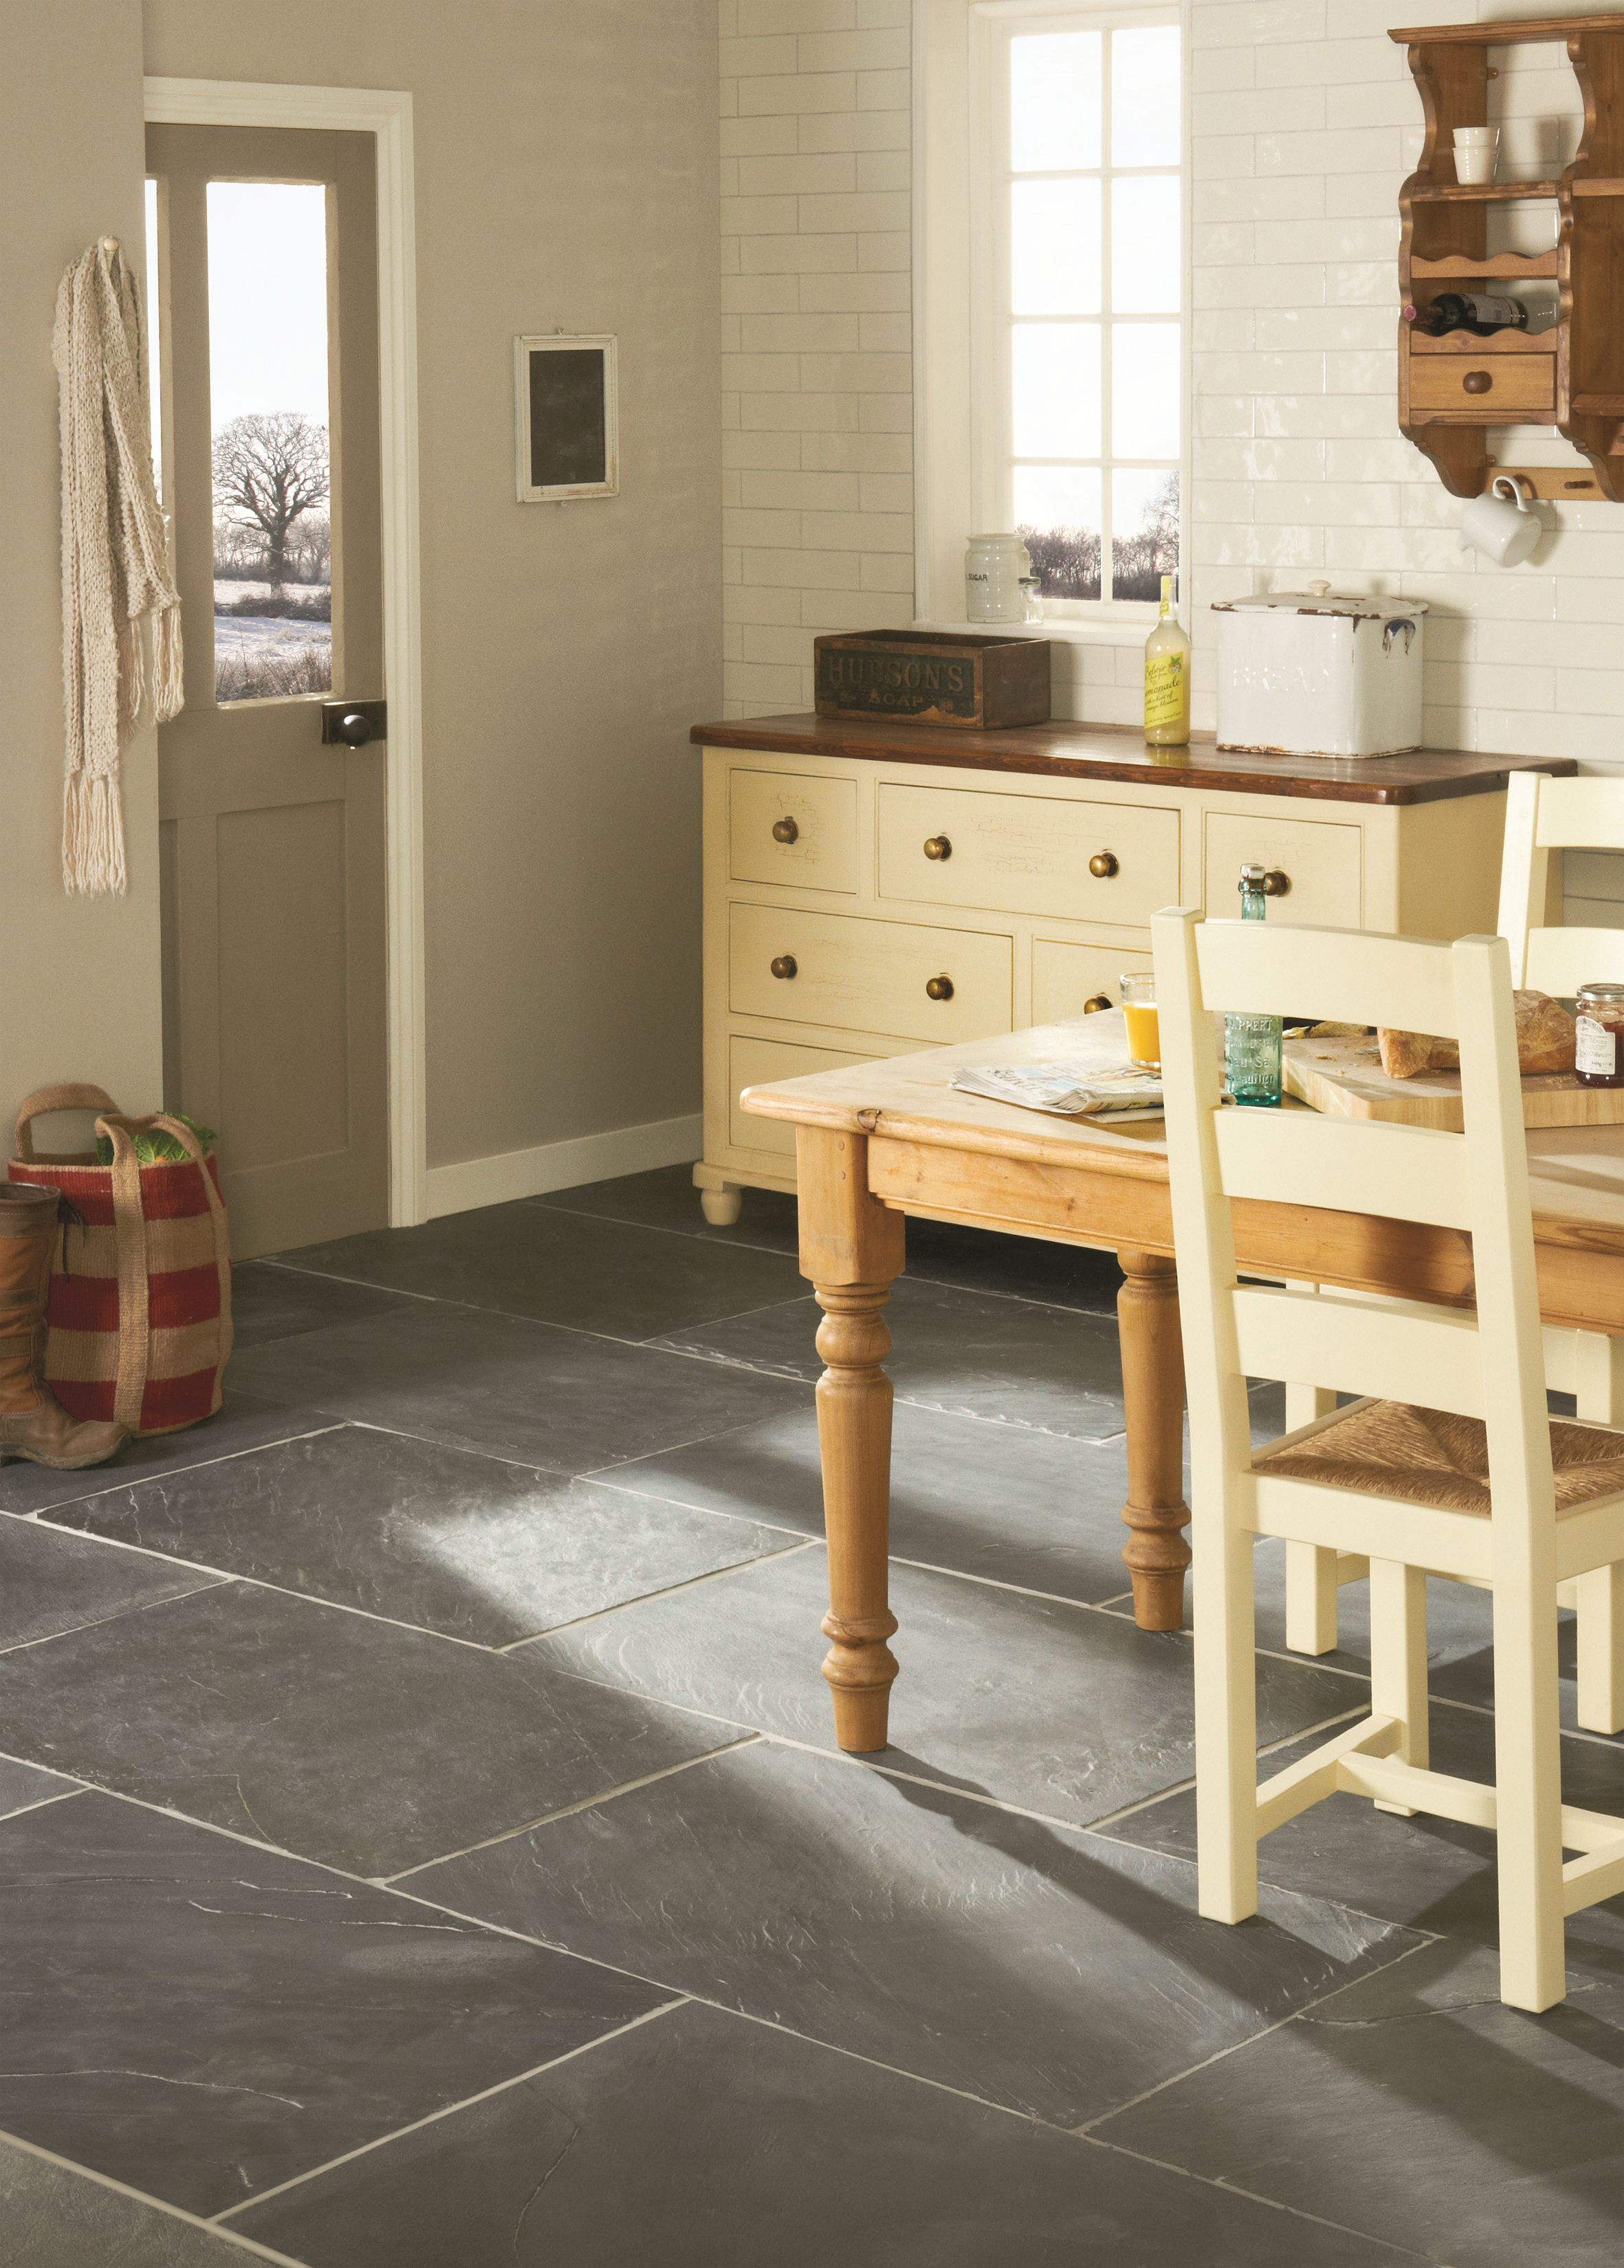 Kitchen Flooring Why Tiles Are A Great Choice